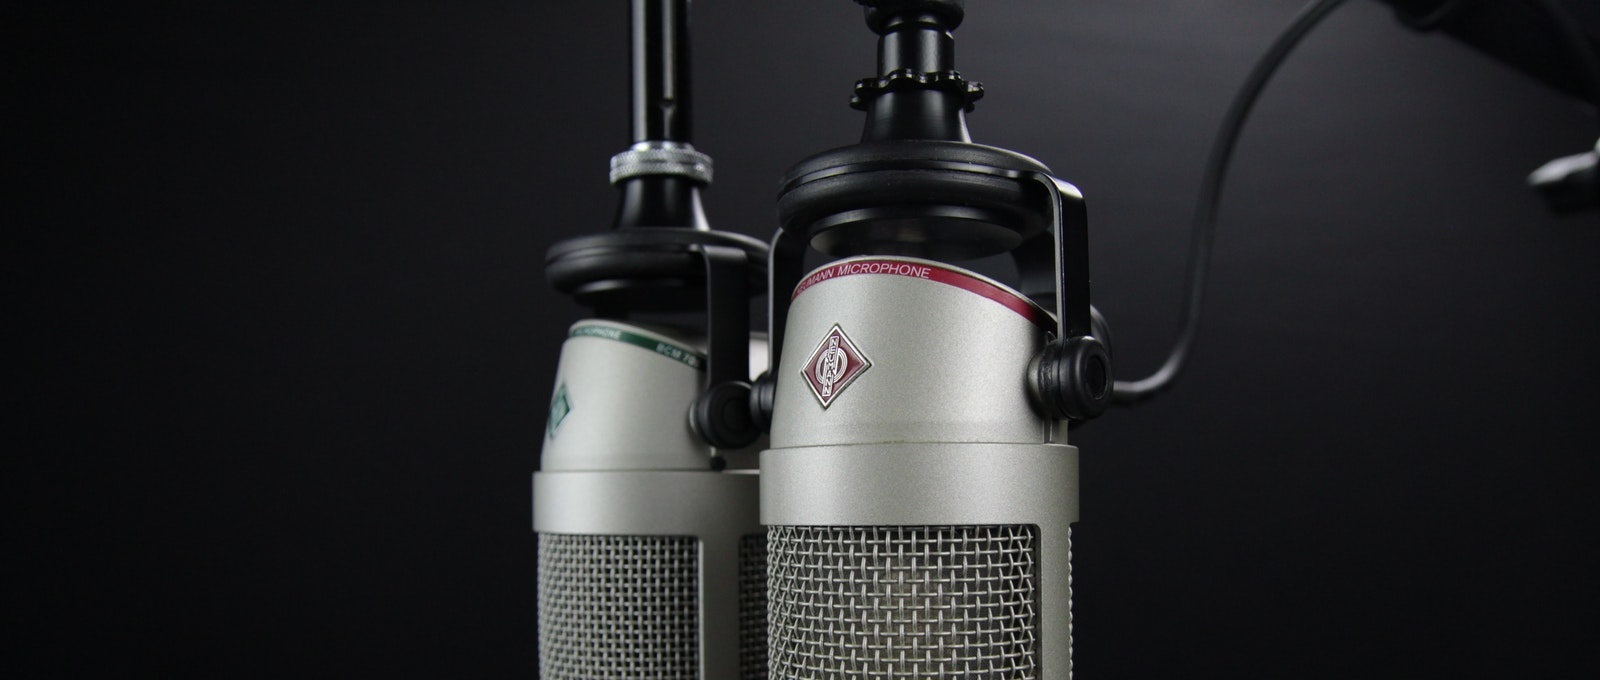 large microphones